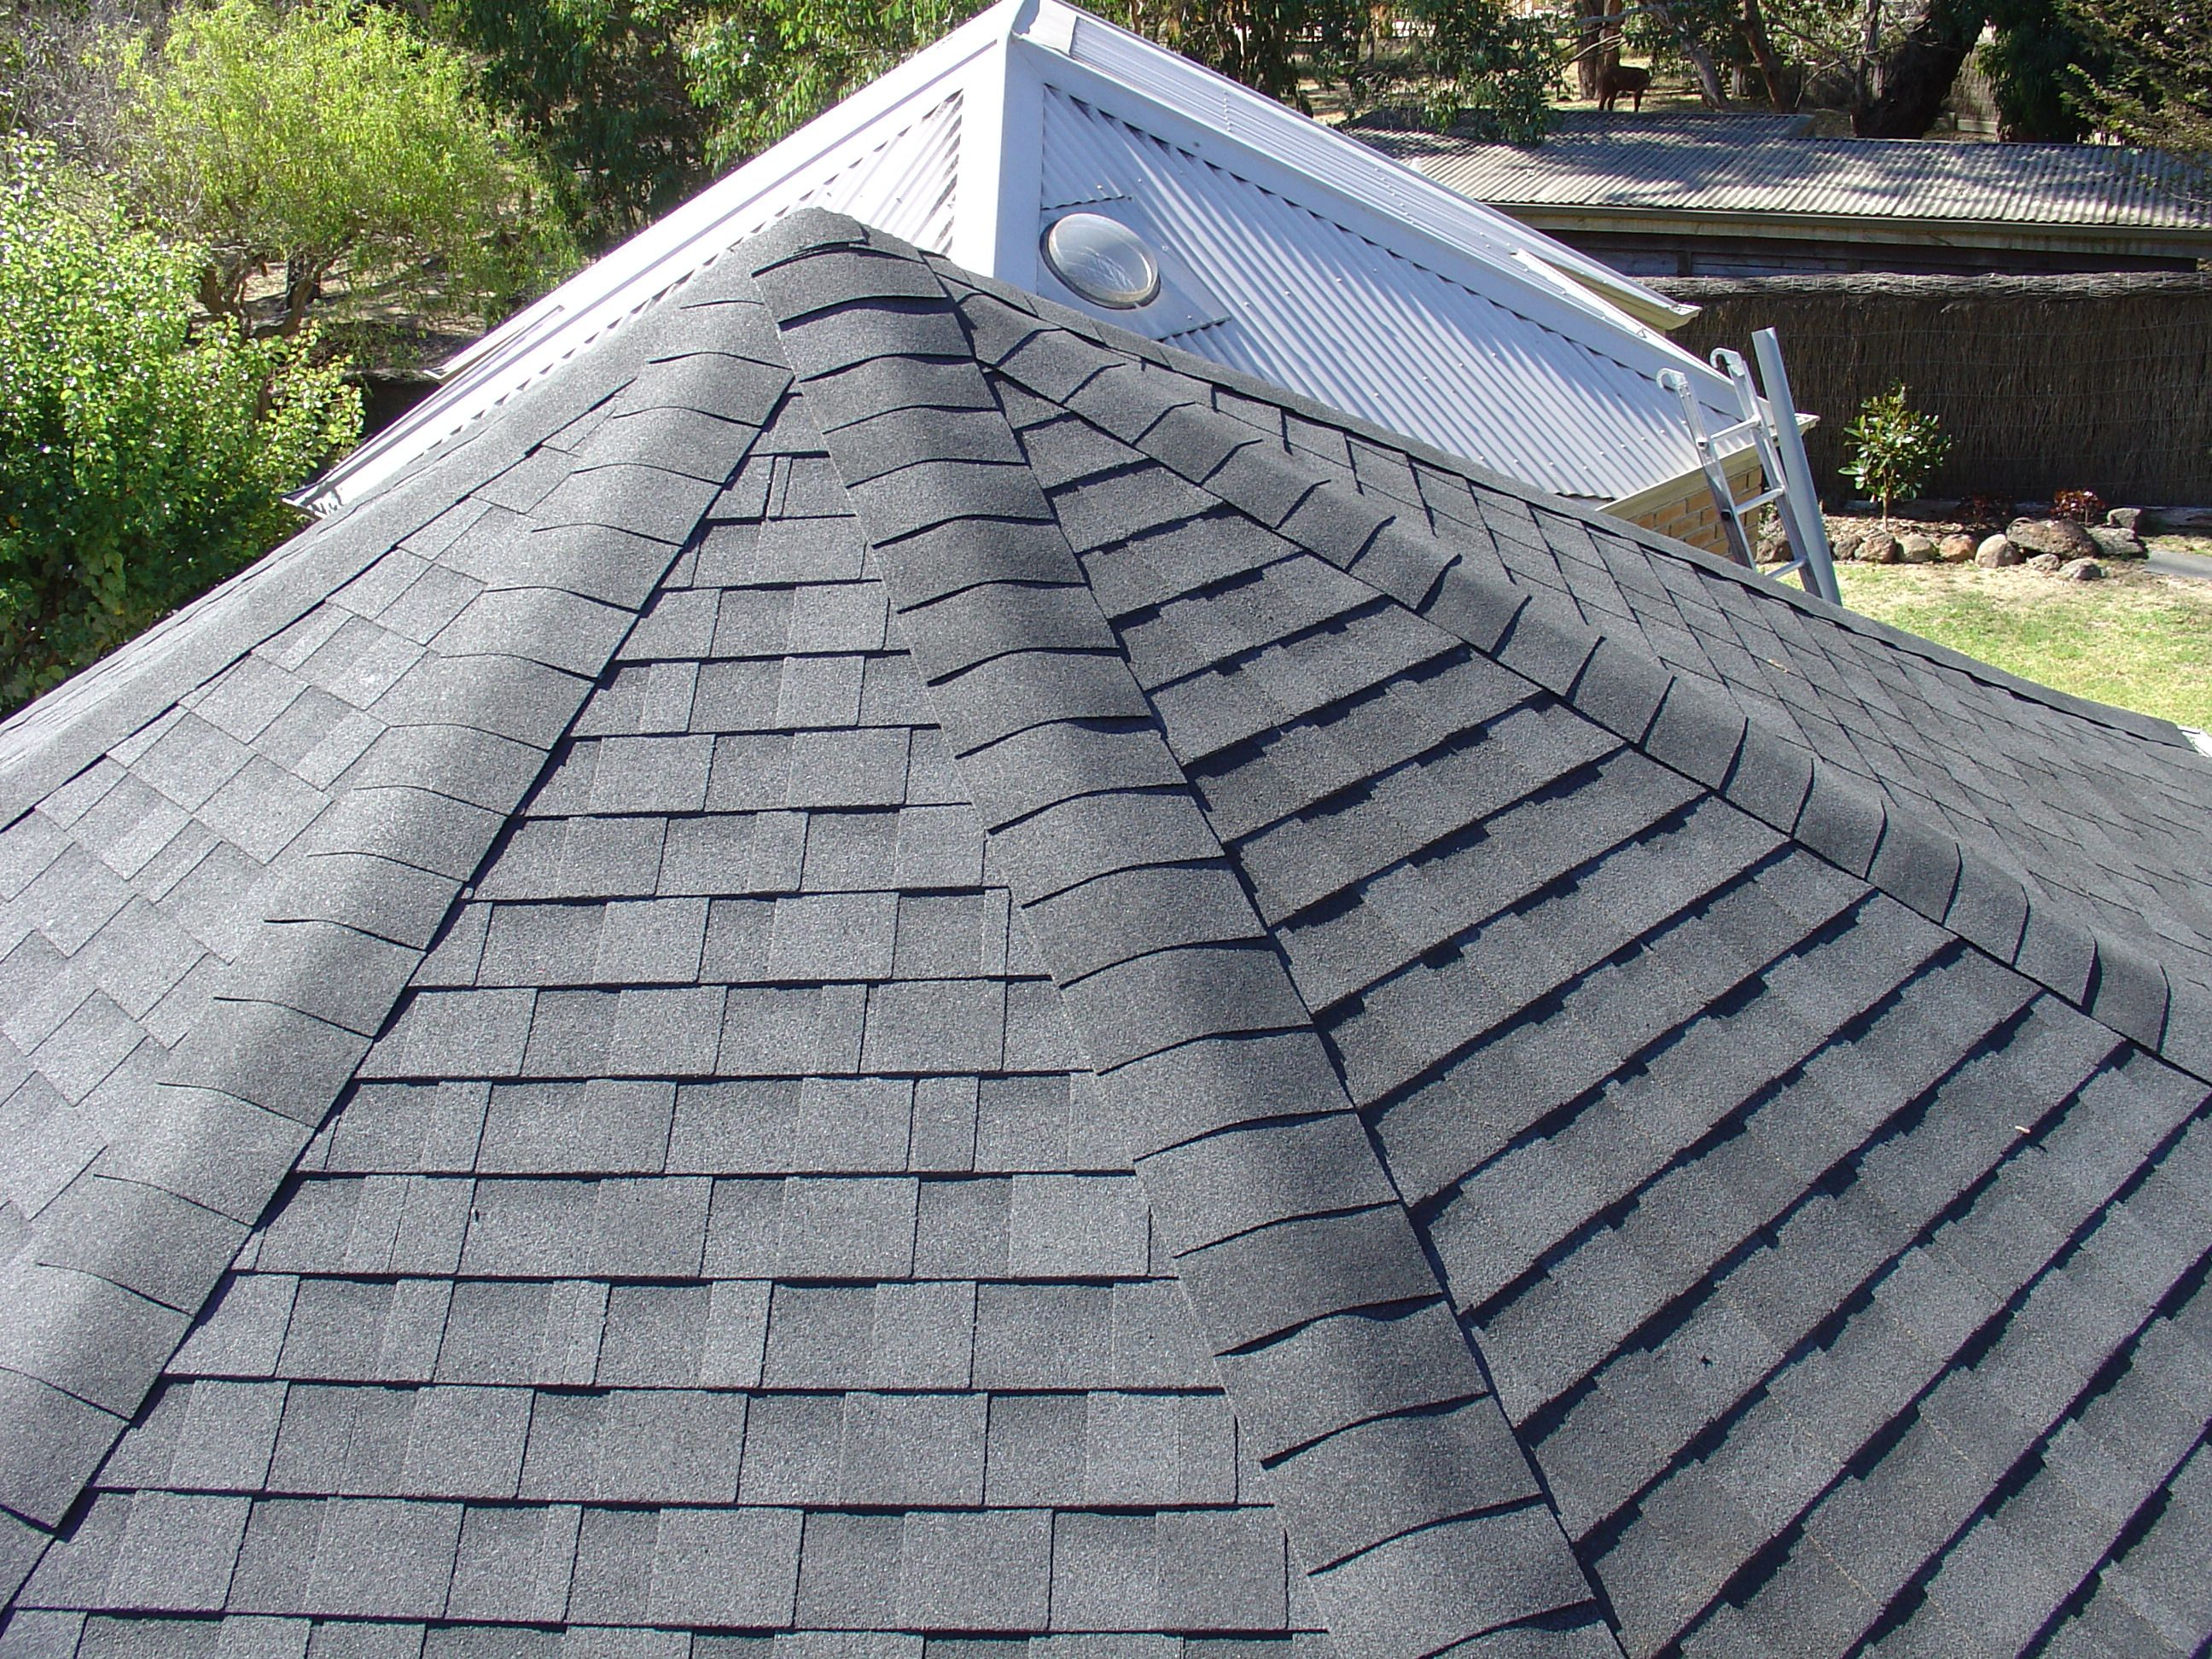 Best Diy Roof Installation Guide For An Asphalt Shingle Roofing 400 x 300